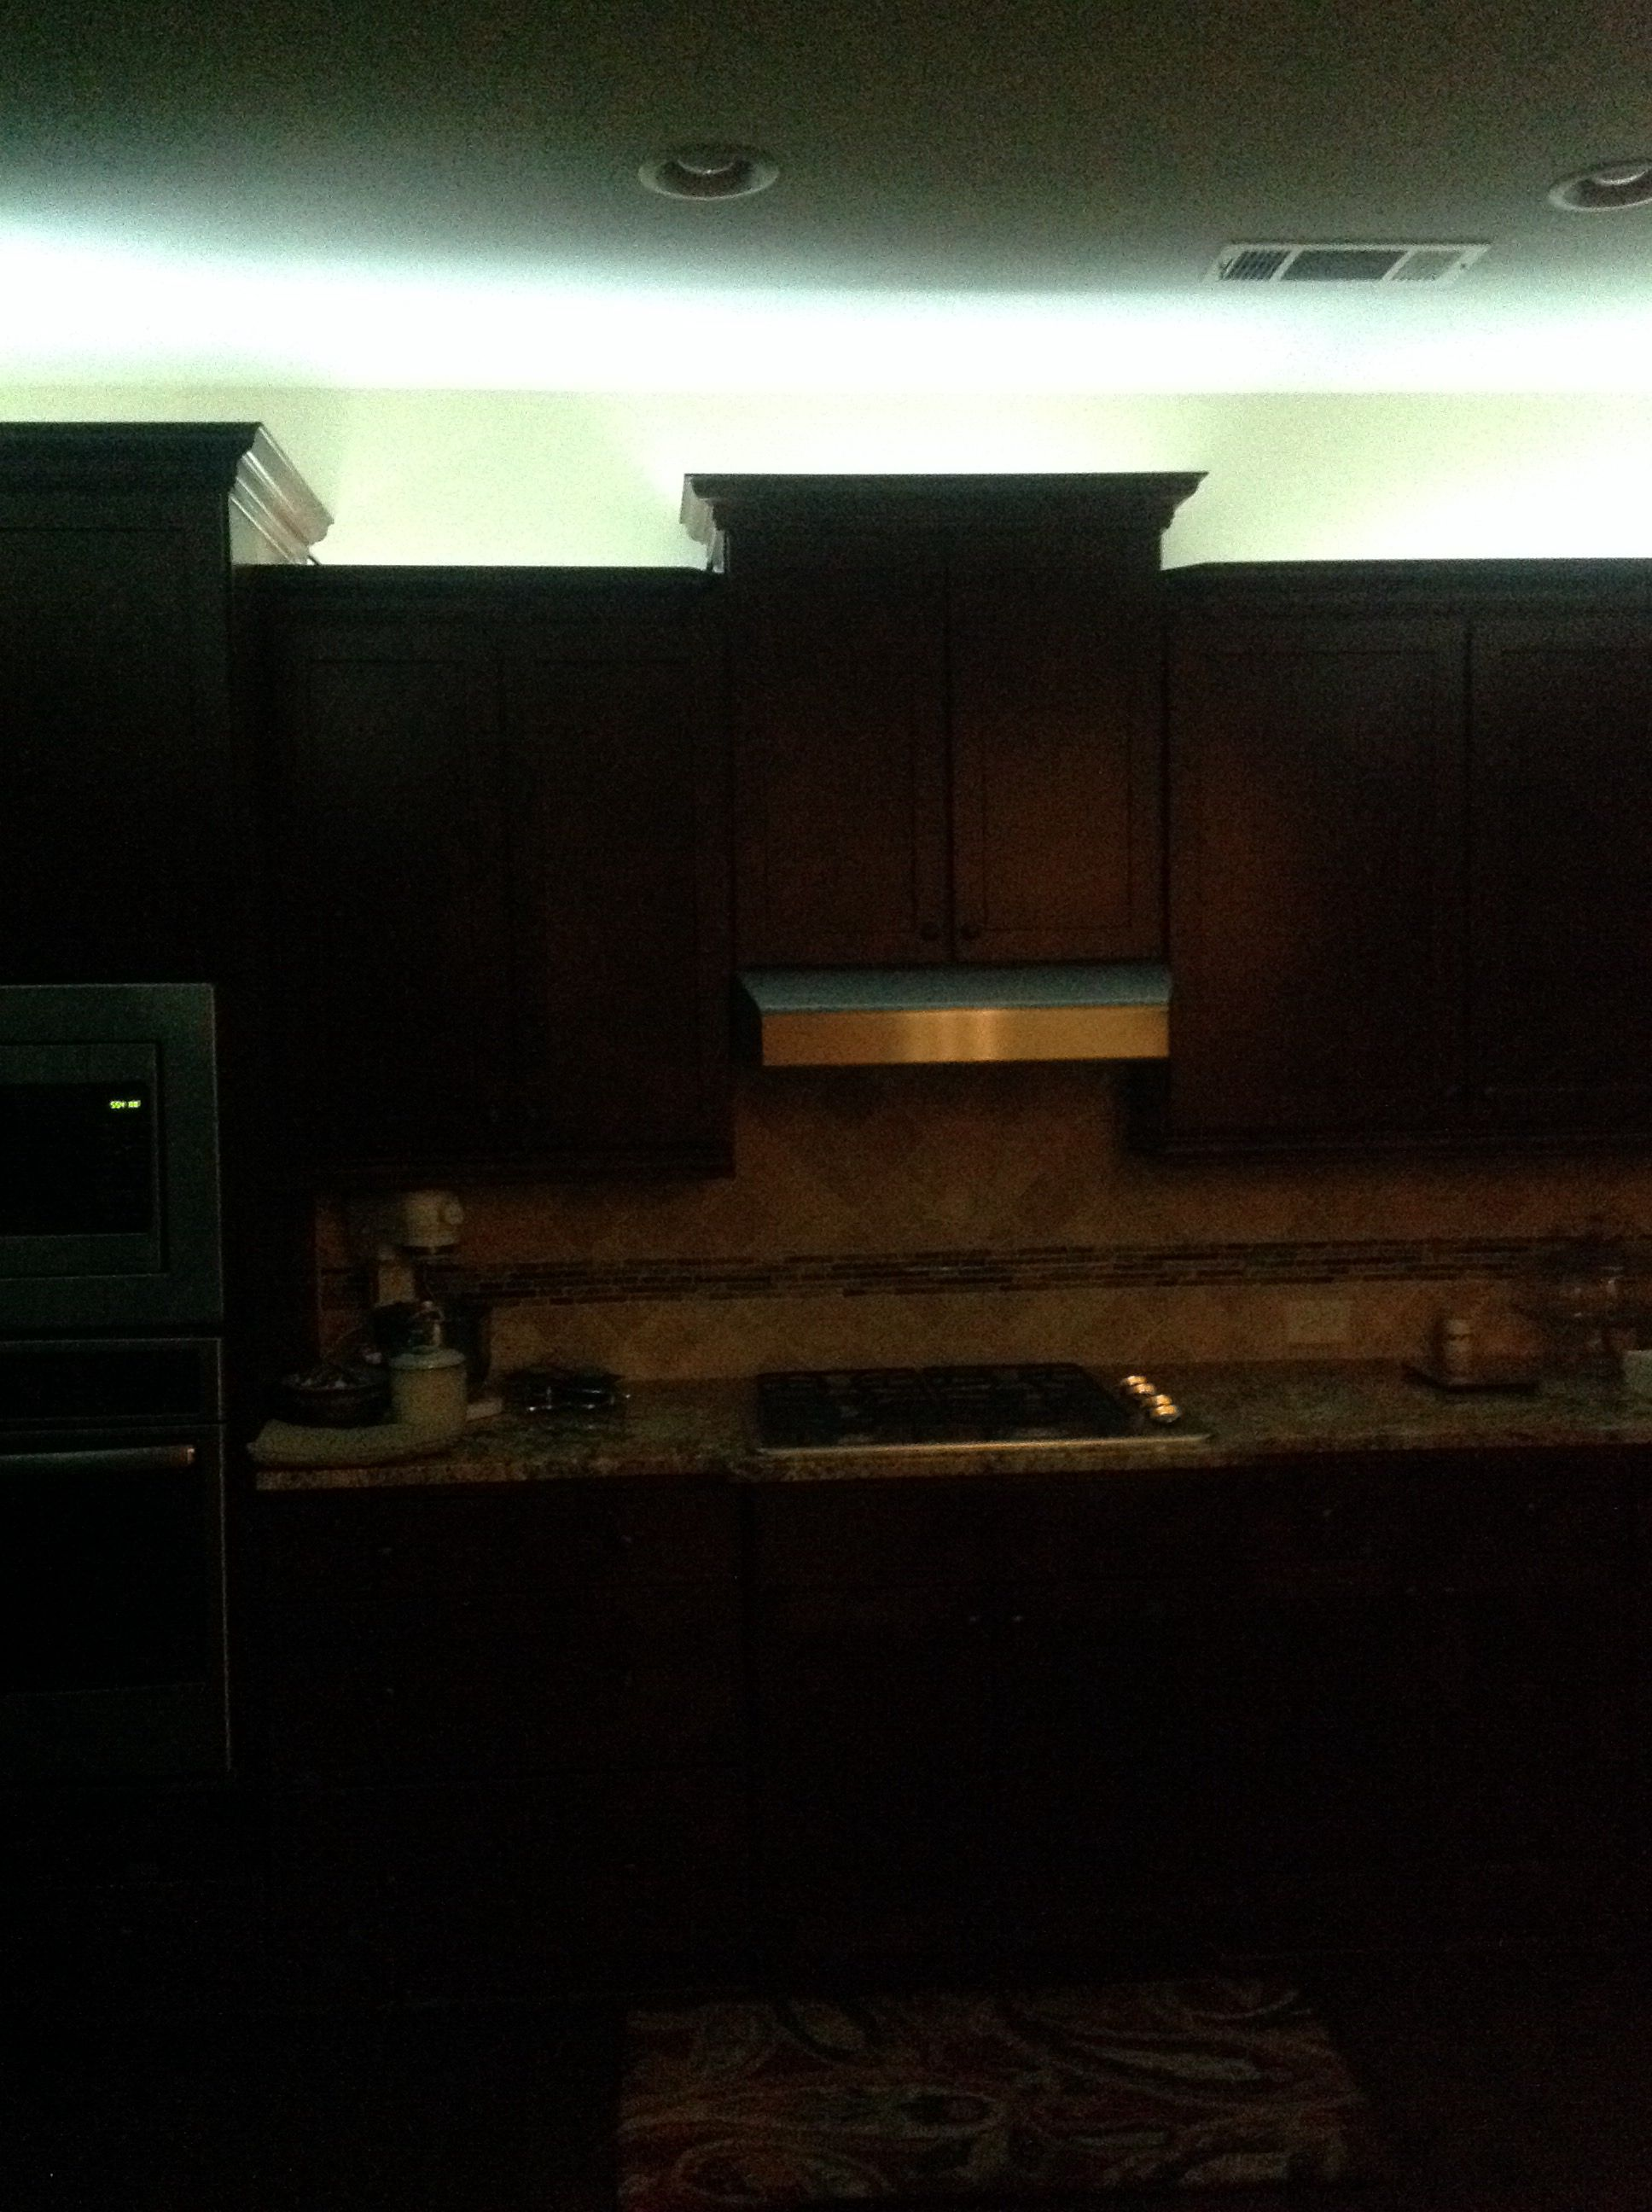 Rope lighting installed above kitchen cabinets 😉😉😉 | Above ...